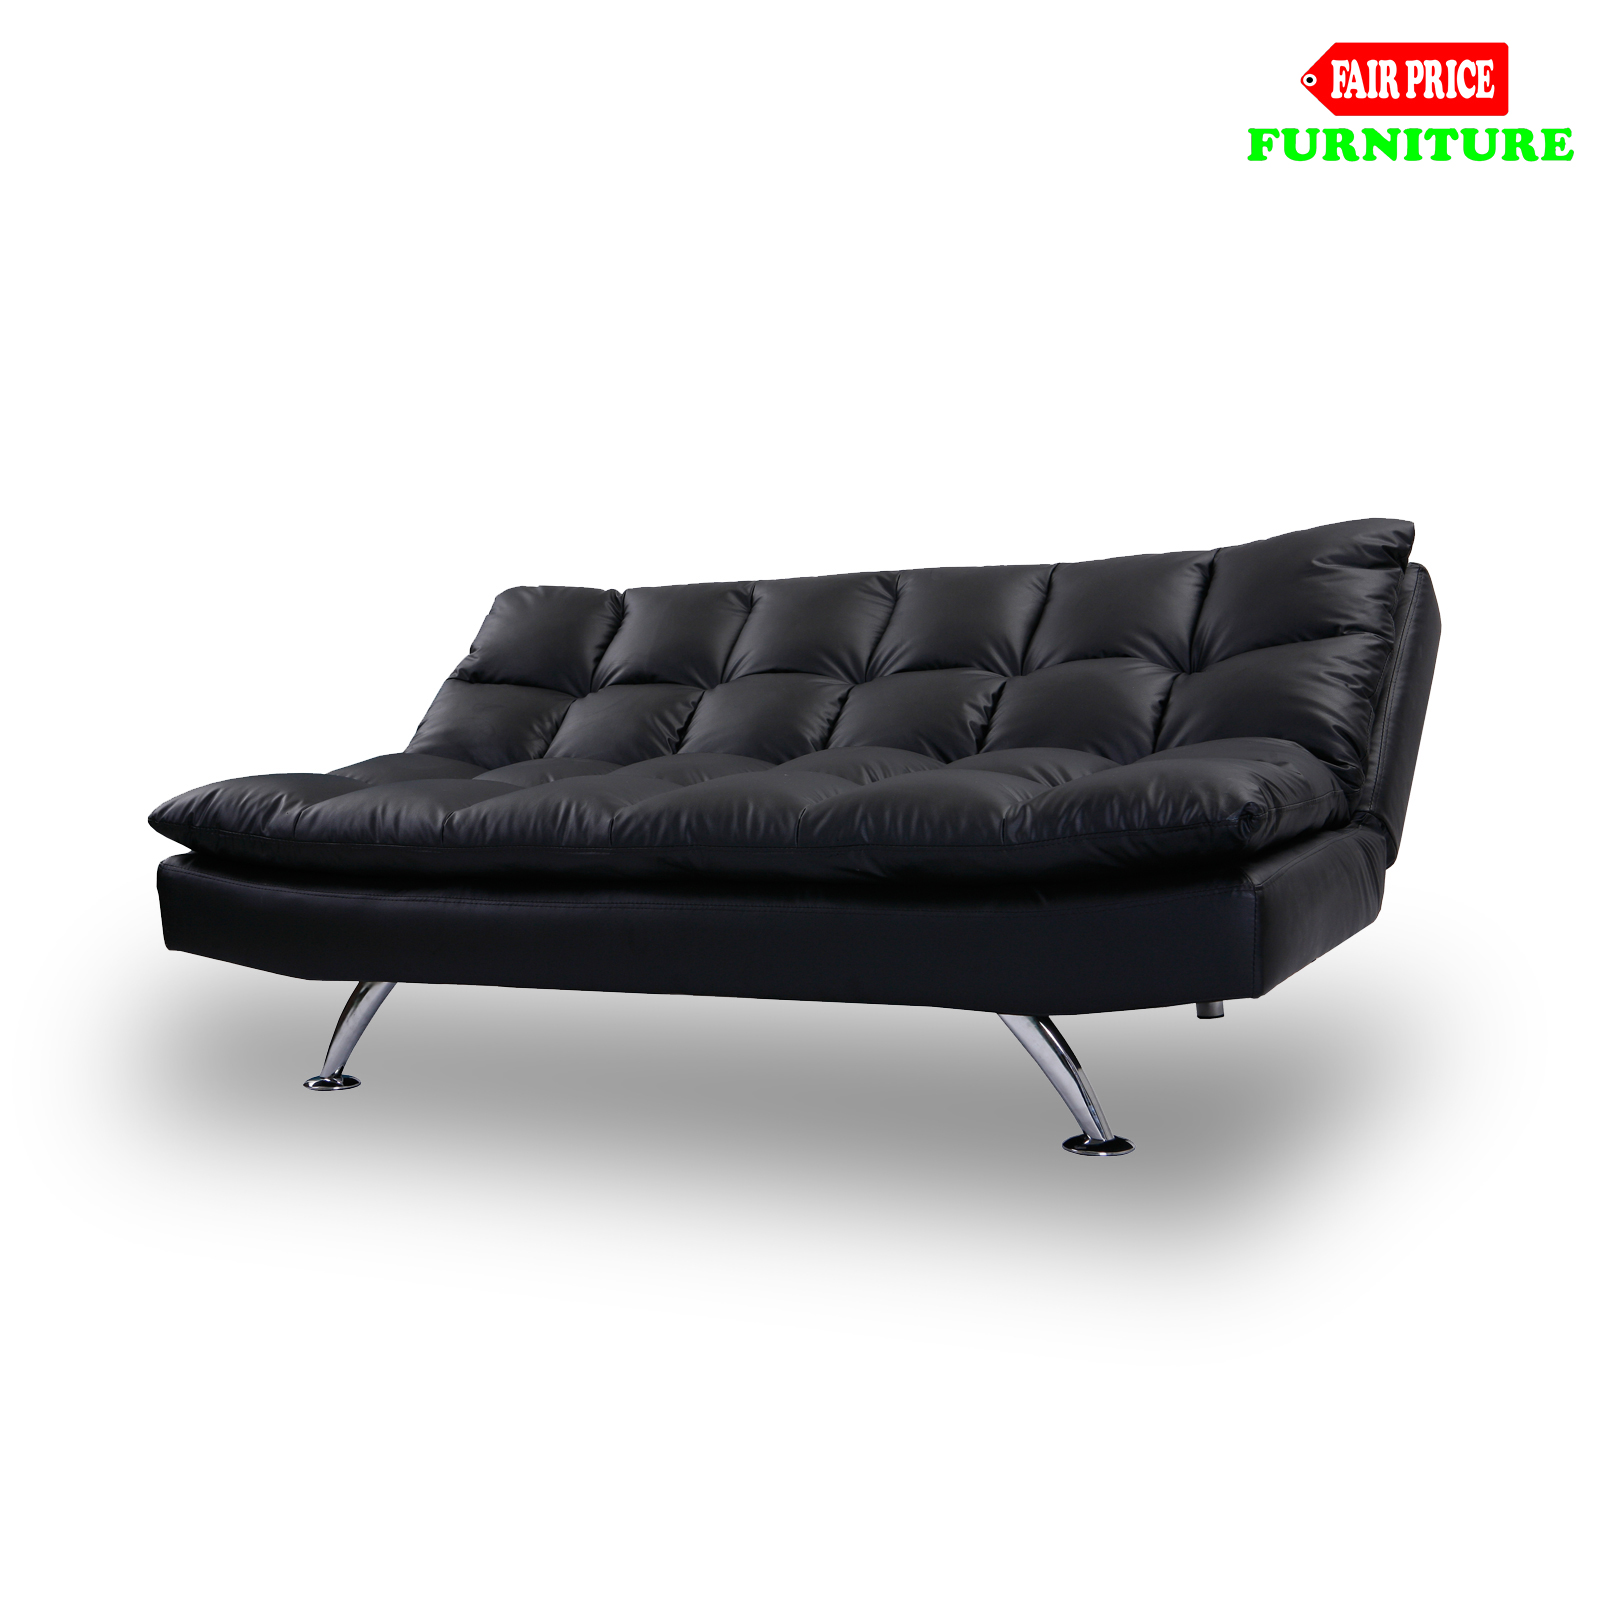 New Luxury Jupiter 3 Seater Black Pu Leather Solid Steel